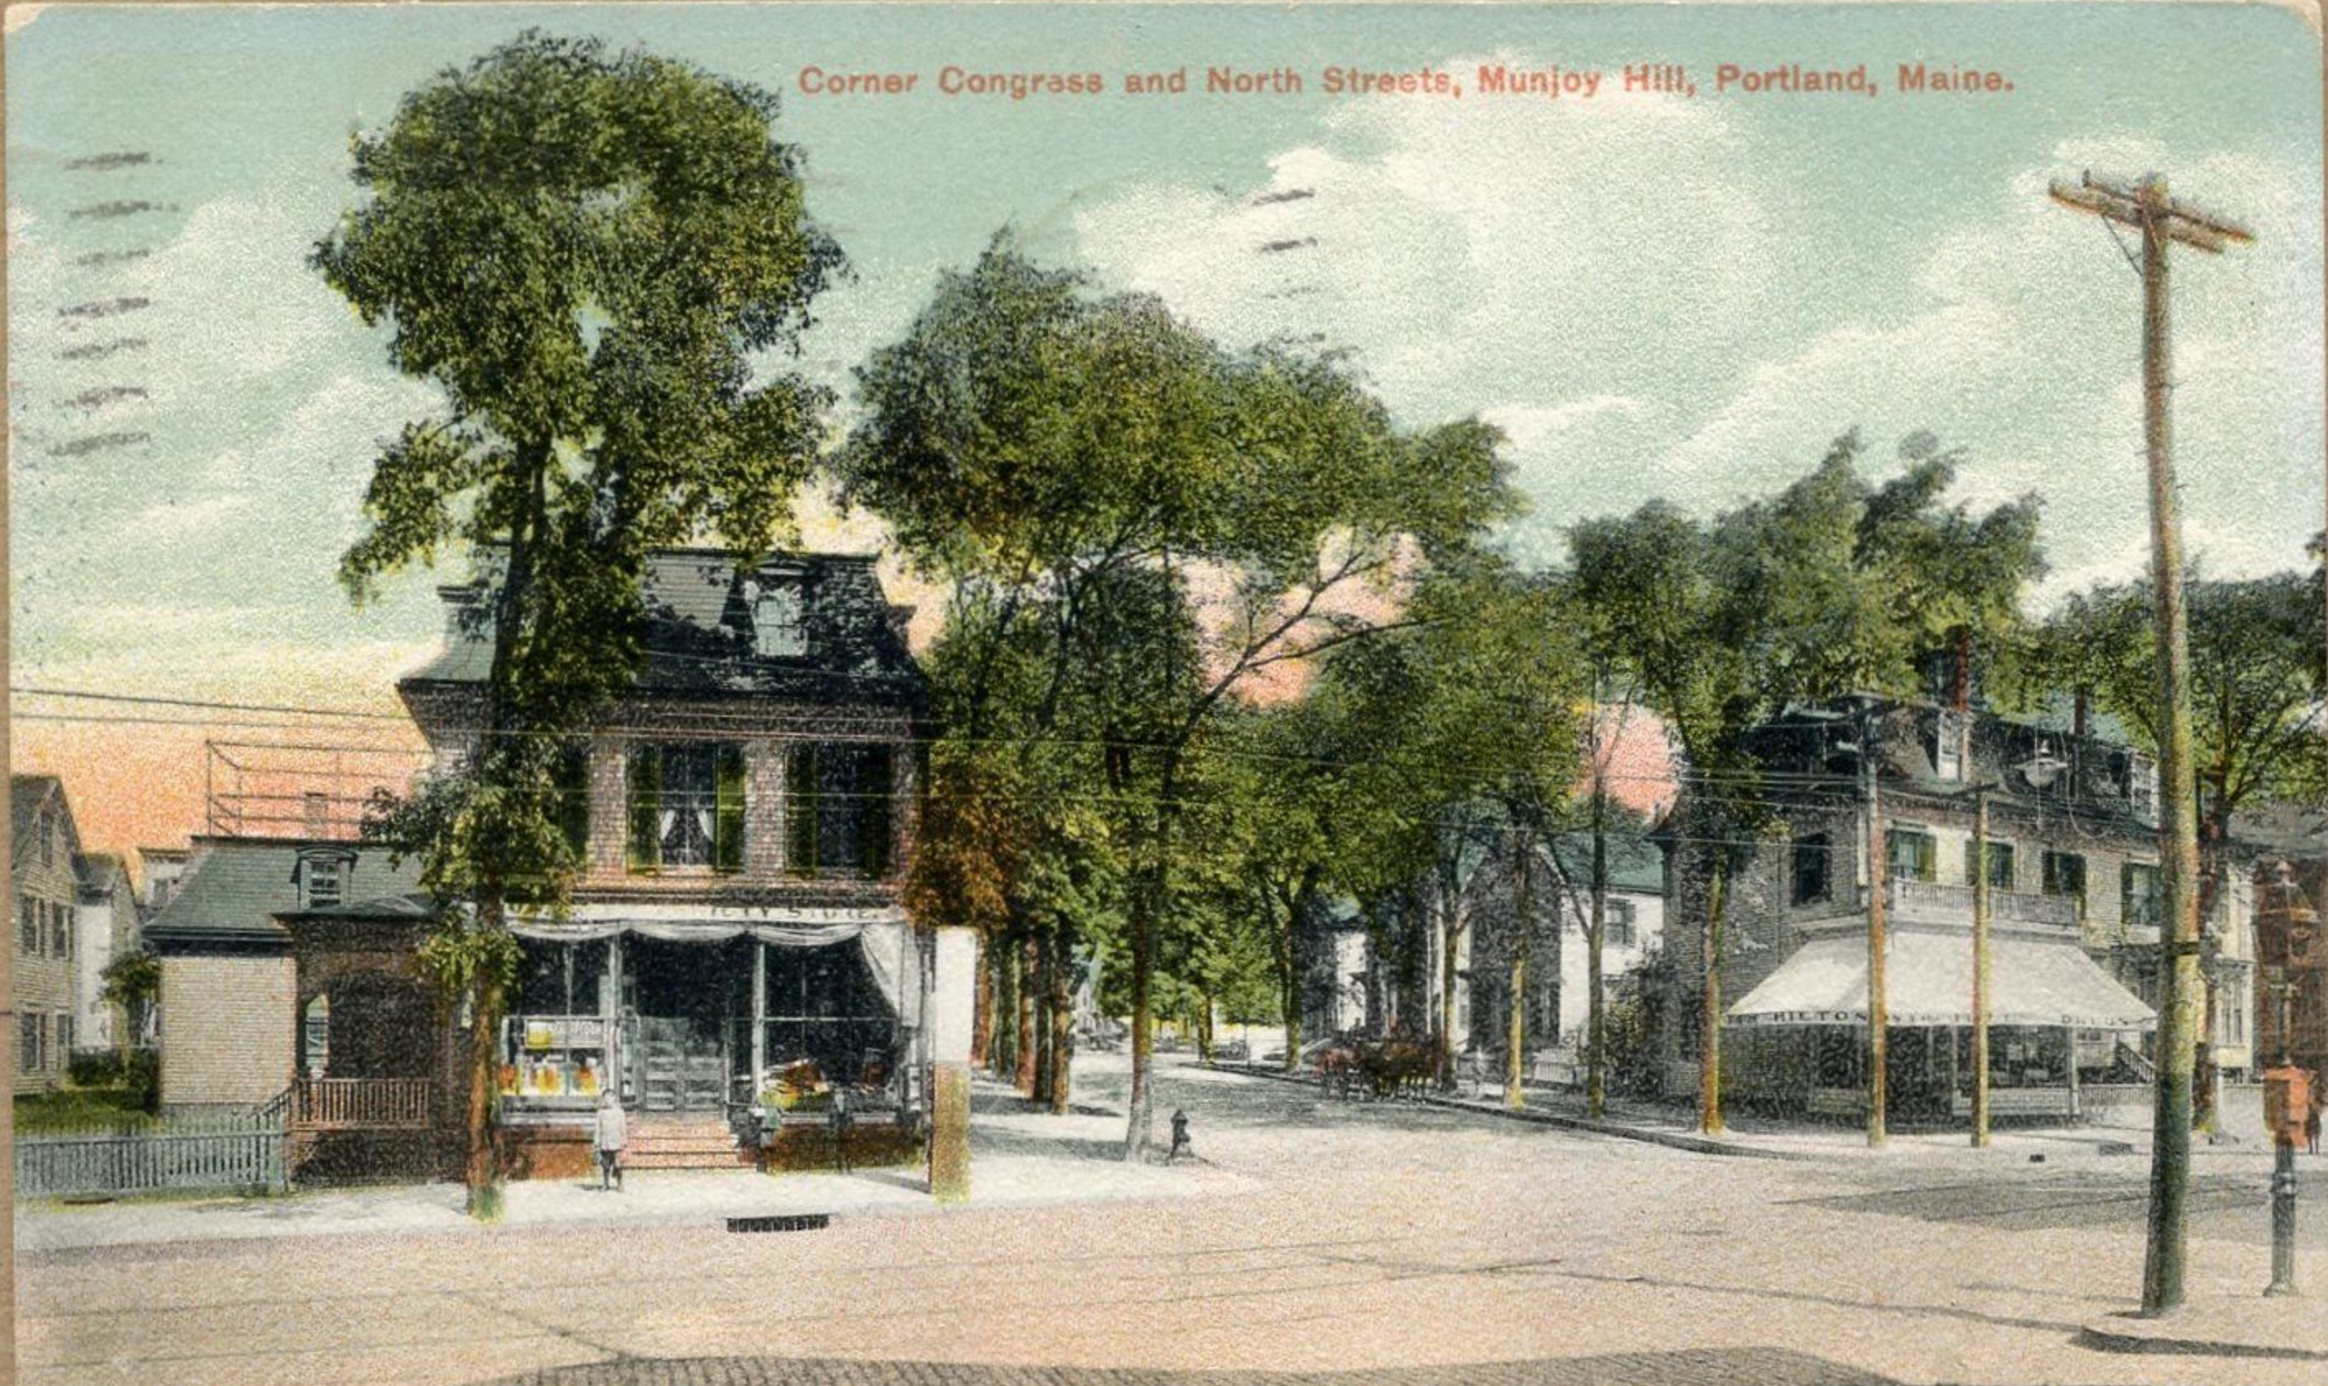 Hilton's (right) and what is now the Hilltop Superette (left)